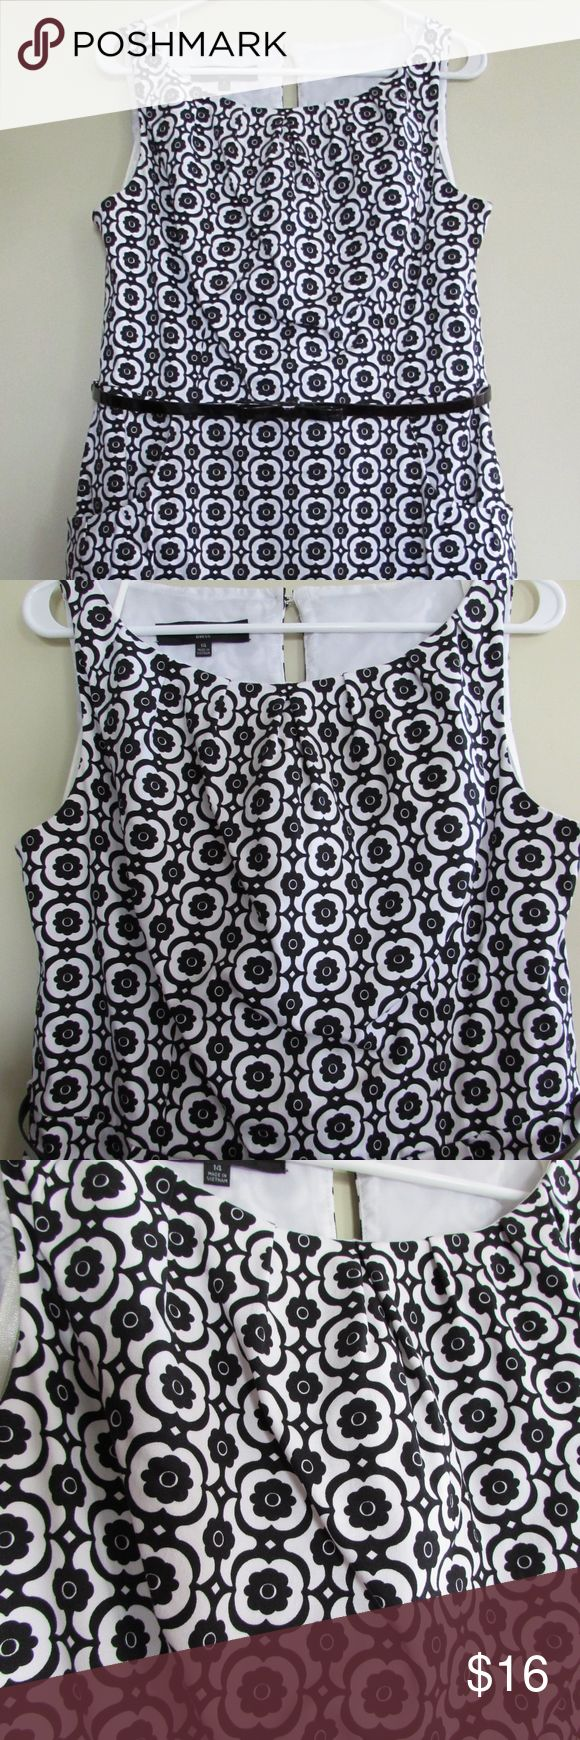 """Nine West Black White Floral Lattice Sheath Dress Adorable black and white cotton blend dress in a floral lattice design. Sleeveless, pleated neckline, front pockets, belt loops (belt is NOT included), keyhole back at neckline, side zip, fully lined, bra snap and back skirt vent; Adorable and VERY nice! Perfect with a black or colorful jacket for a holiday party!  Measures: 40"""" bust; 34"""" waist, 40"""" overall length, 23"""" skirt length. Ladies sz 14.  Condition: EUC. Overall NICE. Nine West…"""